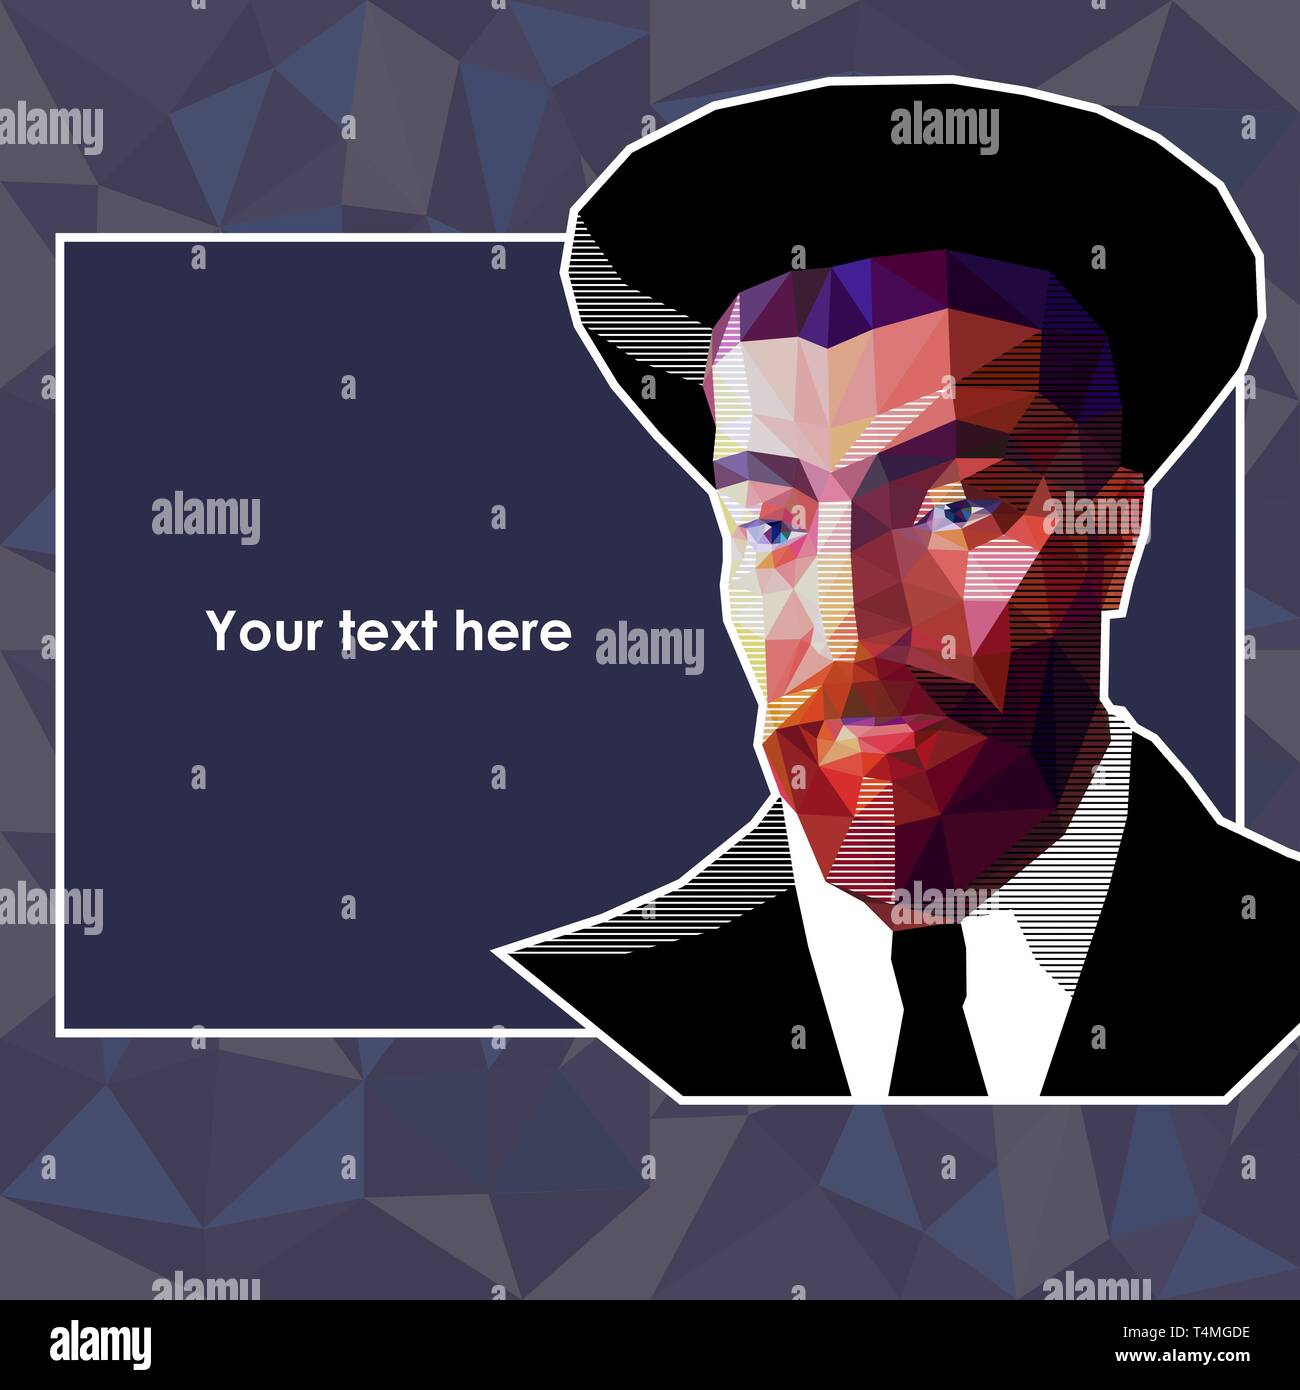 Vector portrait of a young Jew in the low polygon style. The man has a red beard and wide eyebrows. He is wearing a high hat and a suit. There is an a - Stock Vector